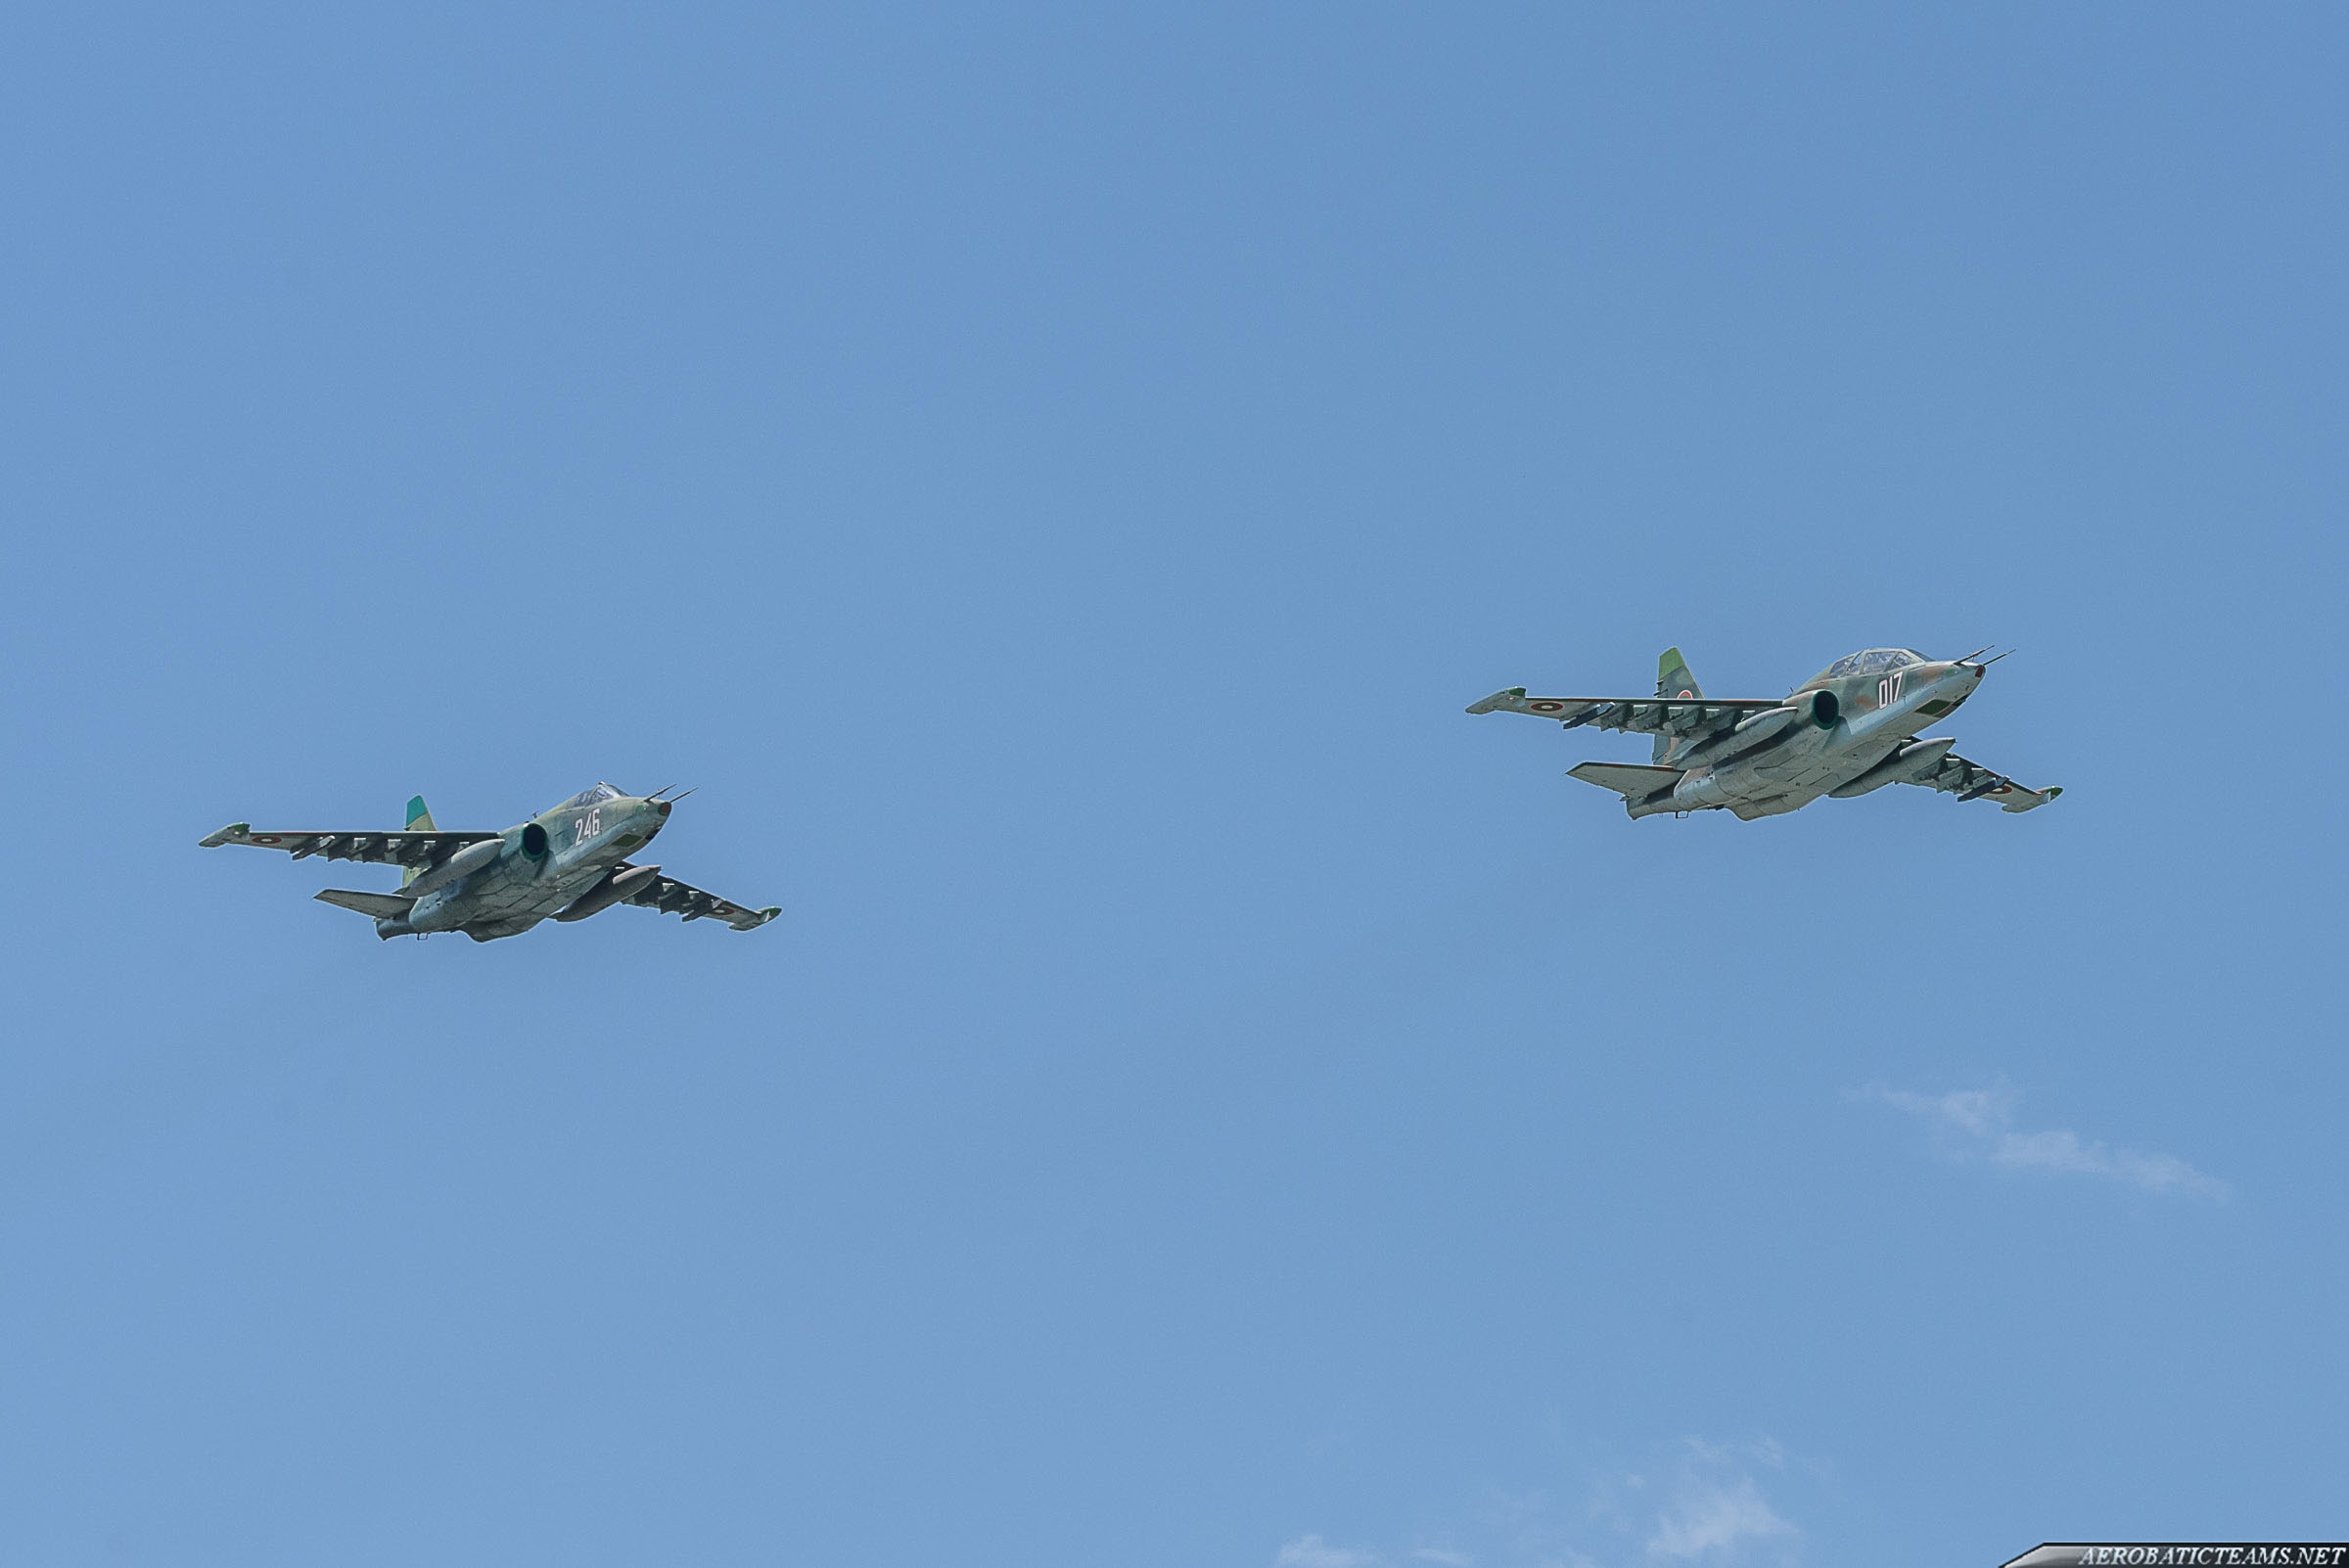 Bulgarian Air Force Su-25 and Su-25UB